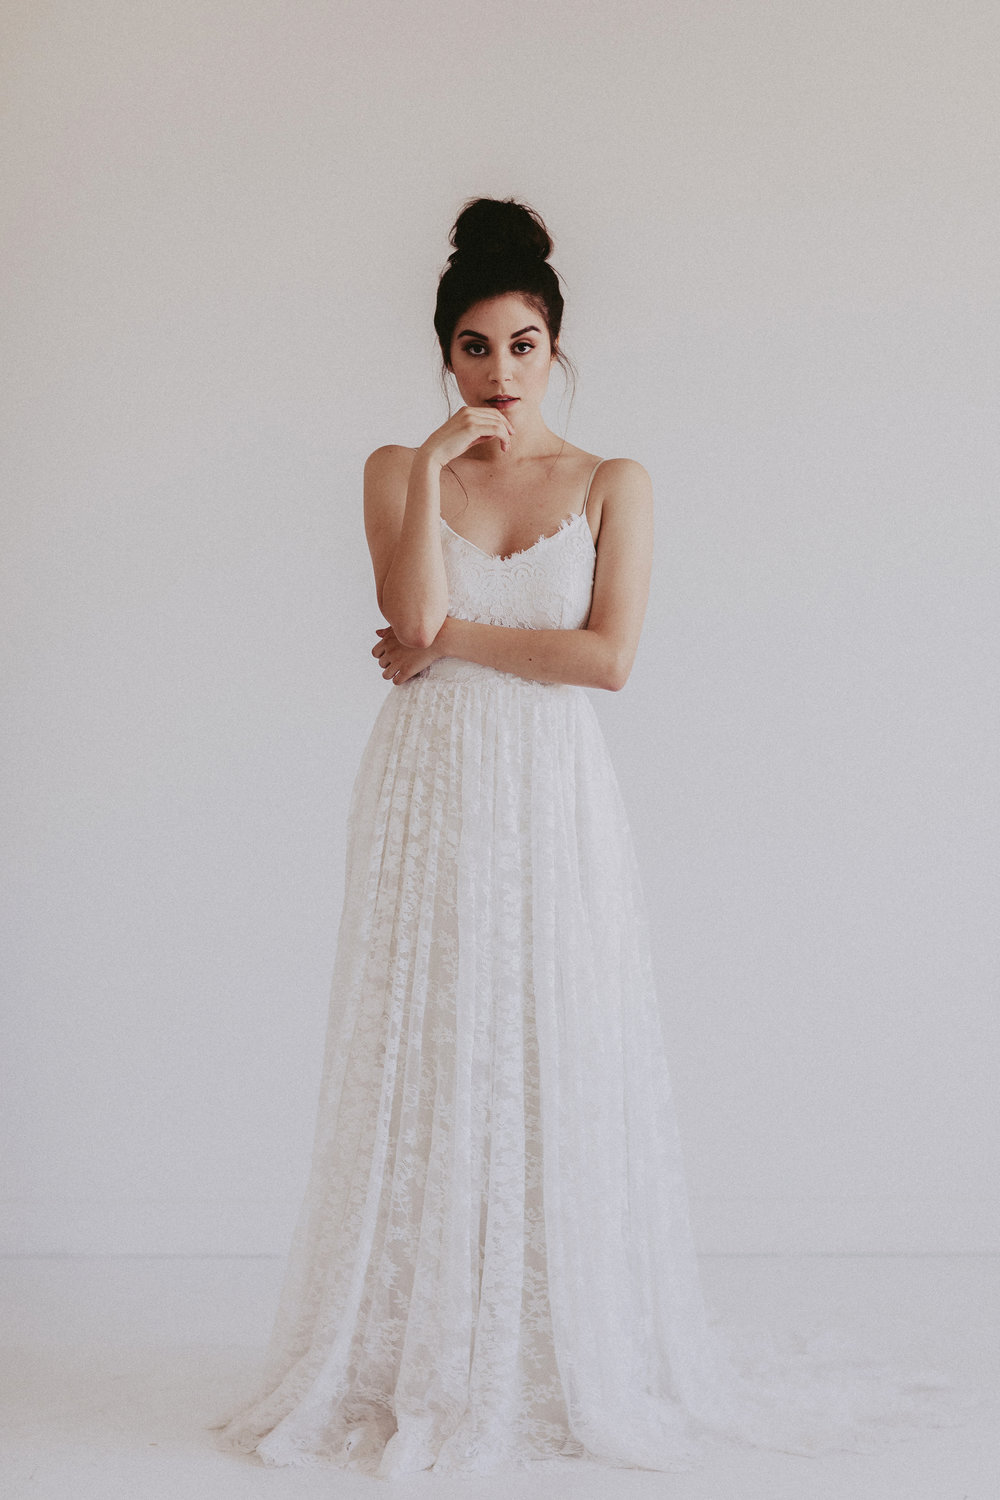 Annie O by Chantel Lauren lace wedding gown a line